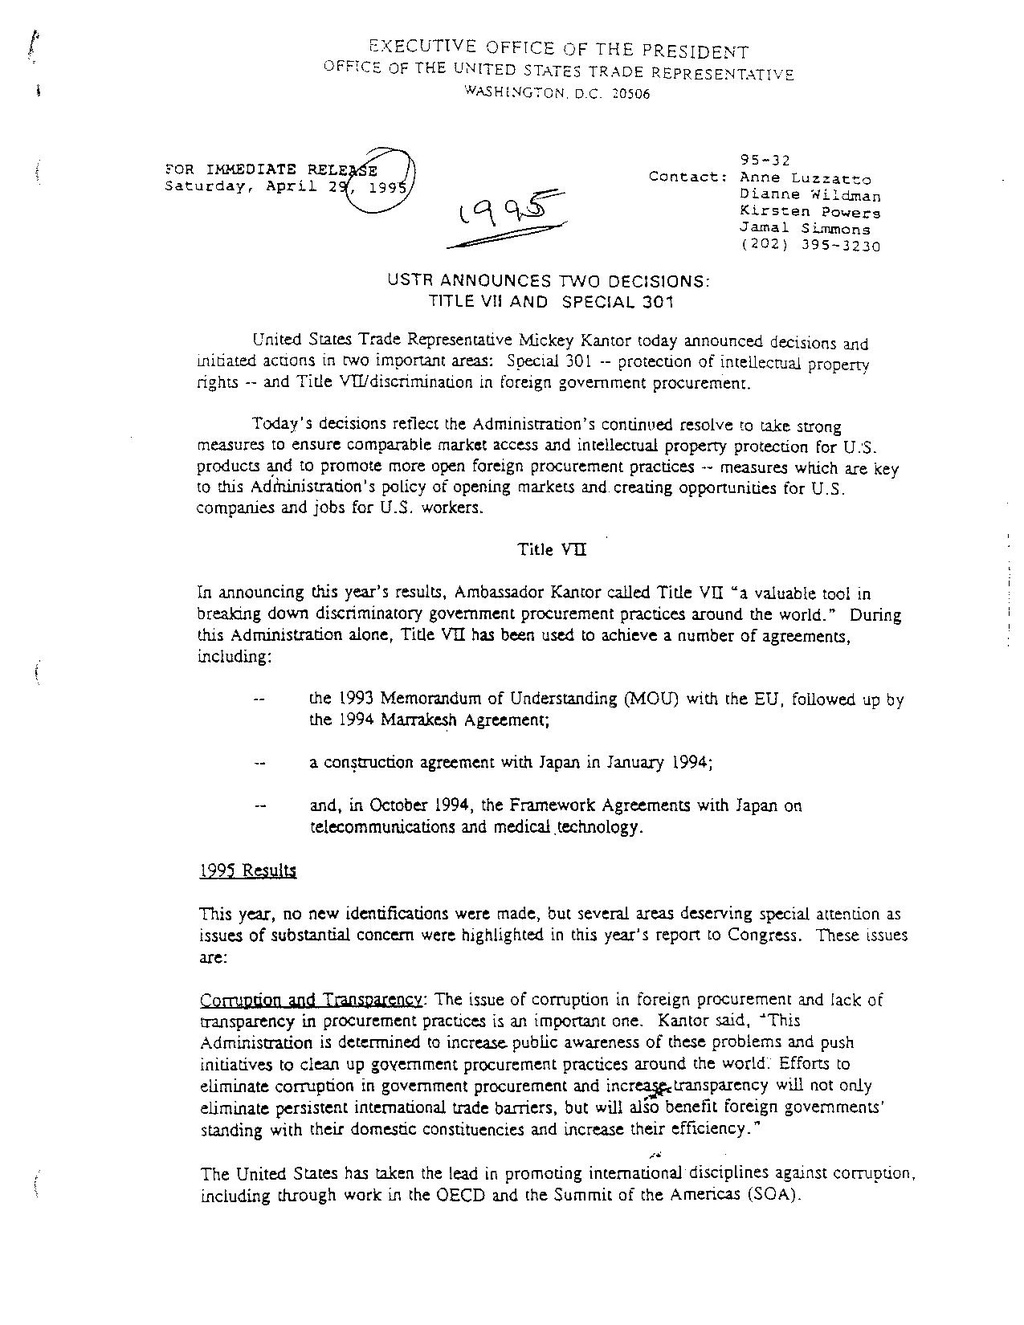 Pagespecial 301 Report 1995pdf1 Wikisource The Free Online Library